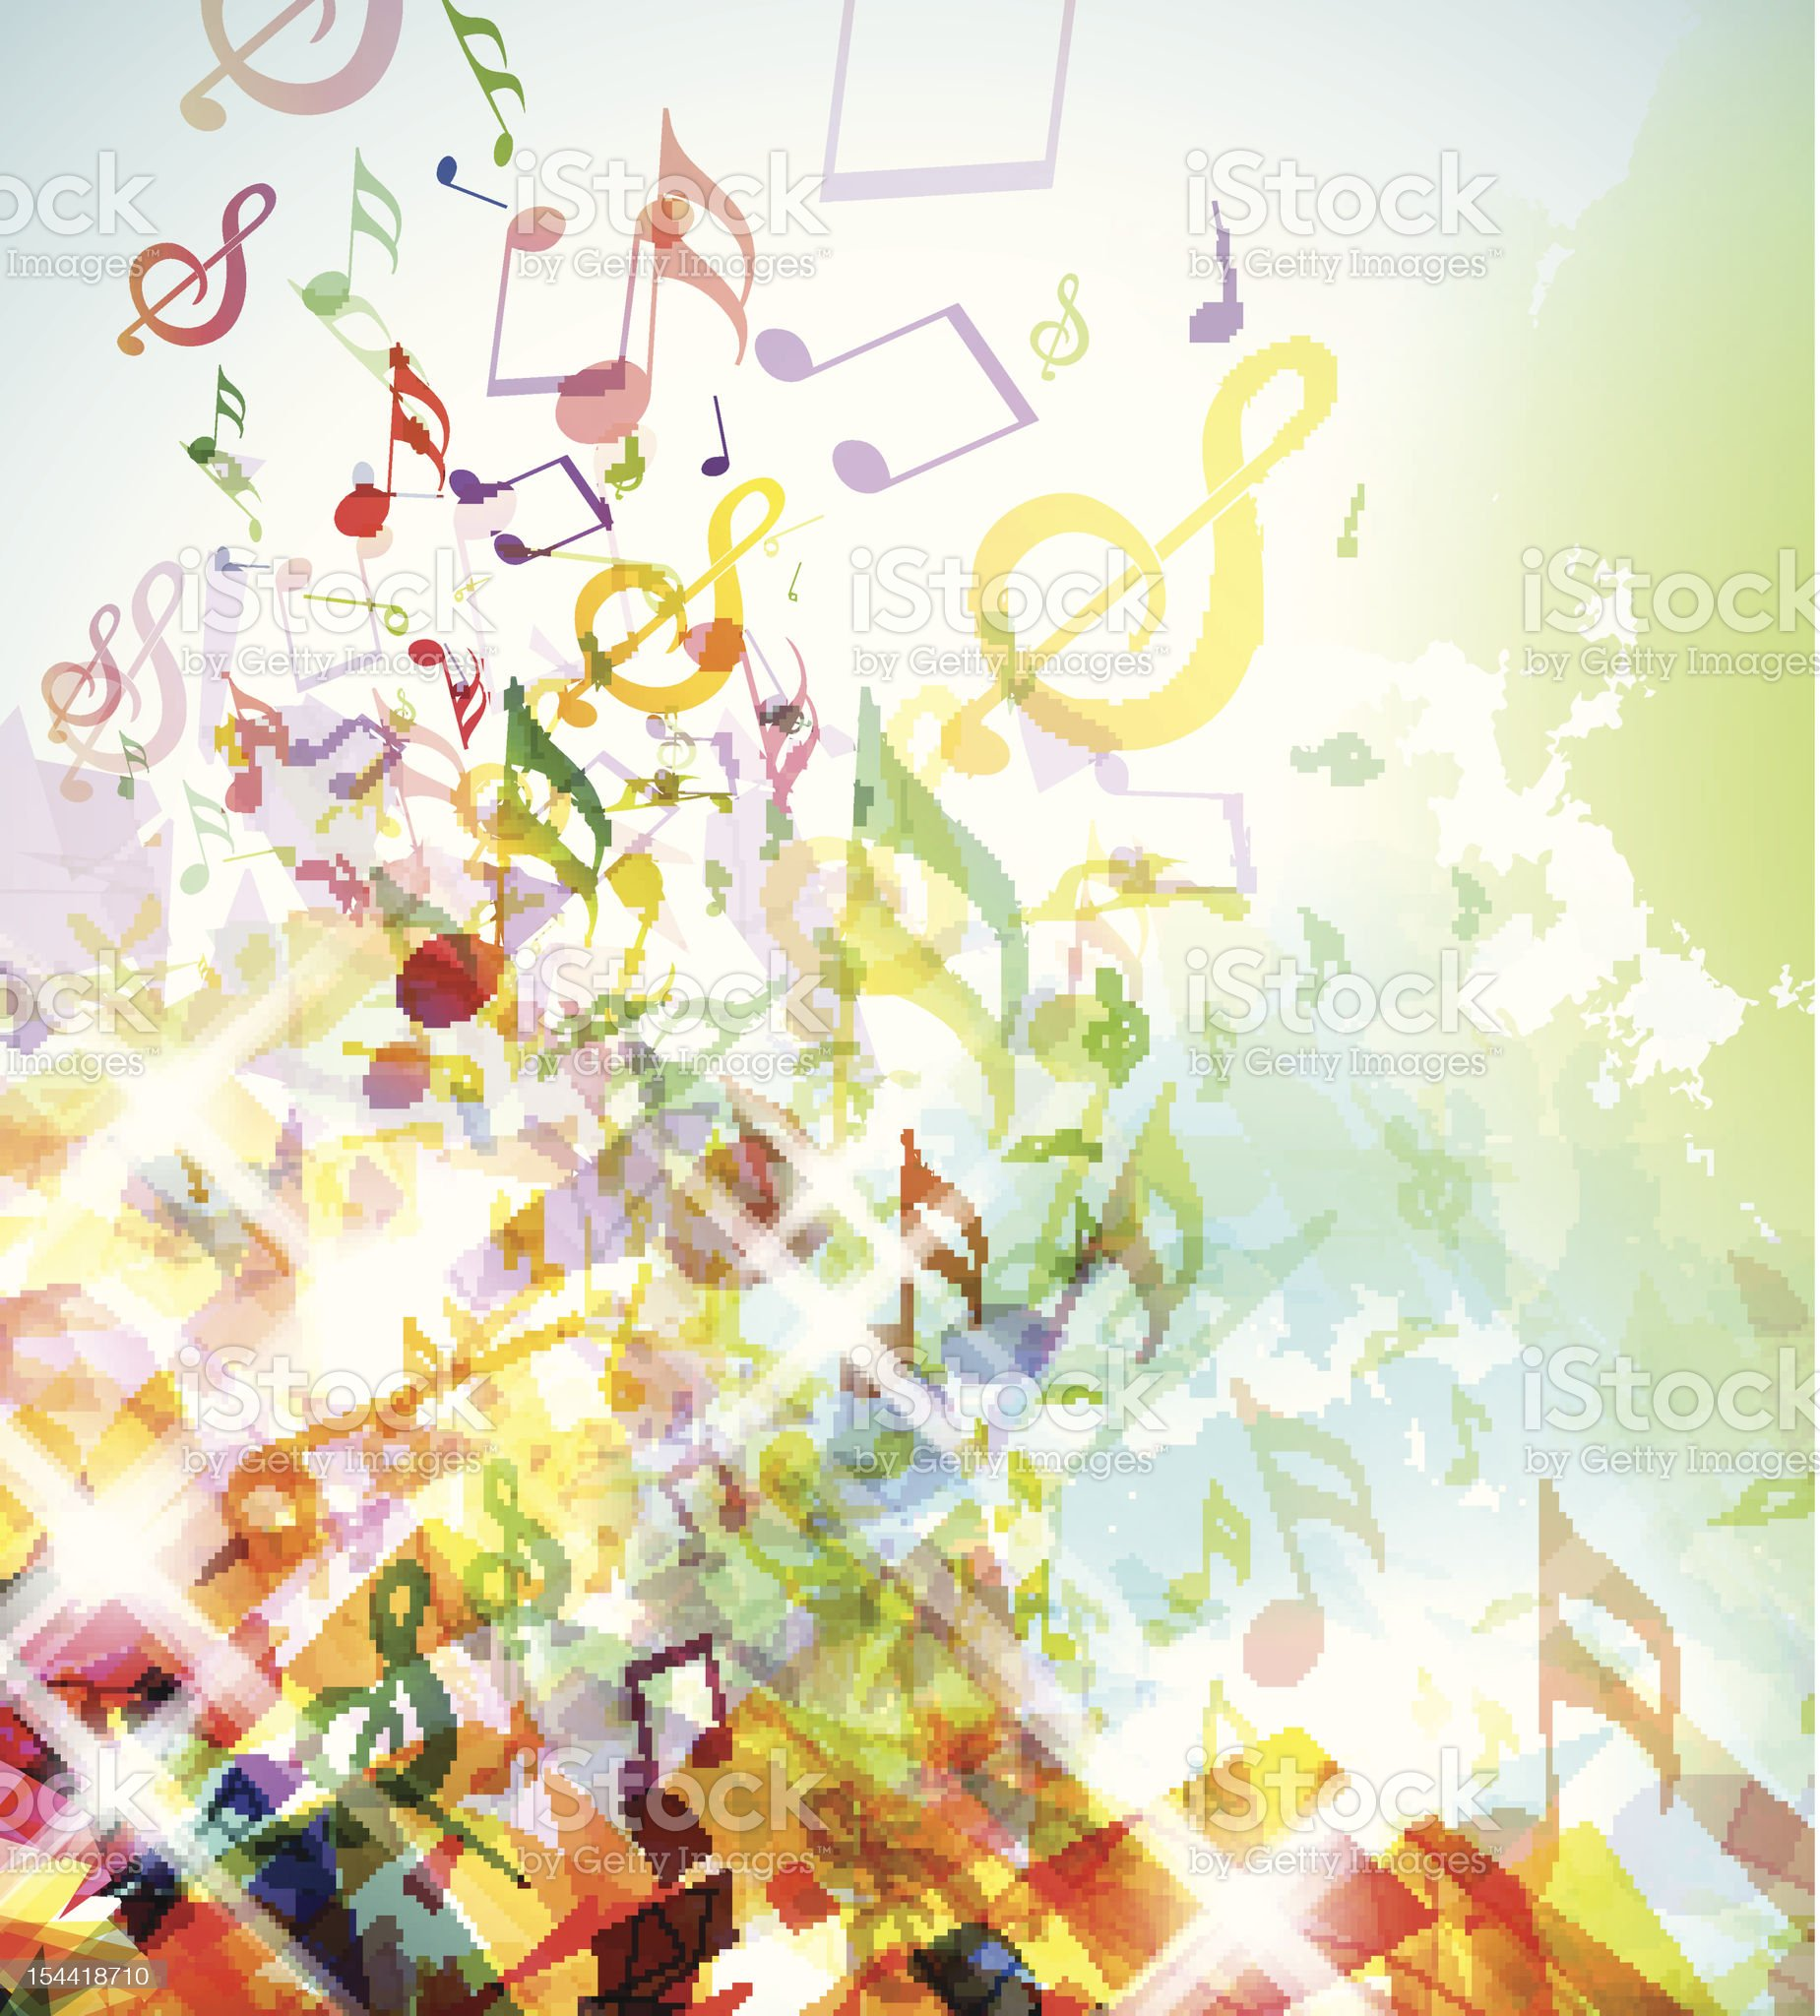 Abstract Shattered Music Notes Background royalty-free stock vector art